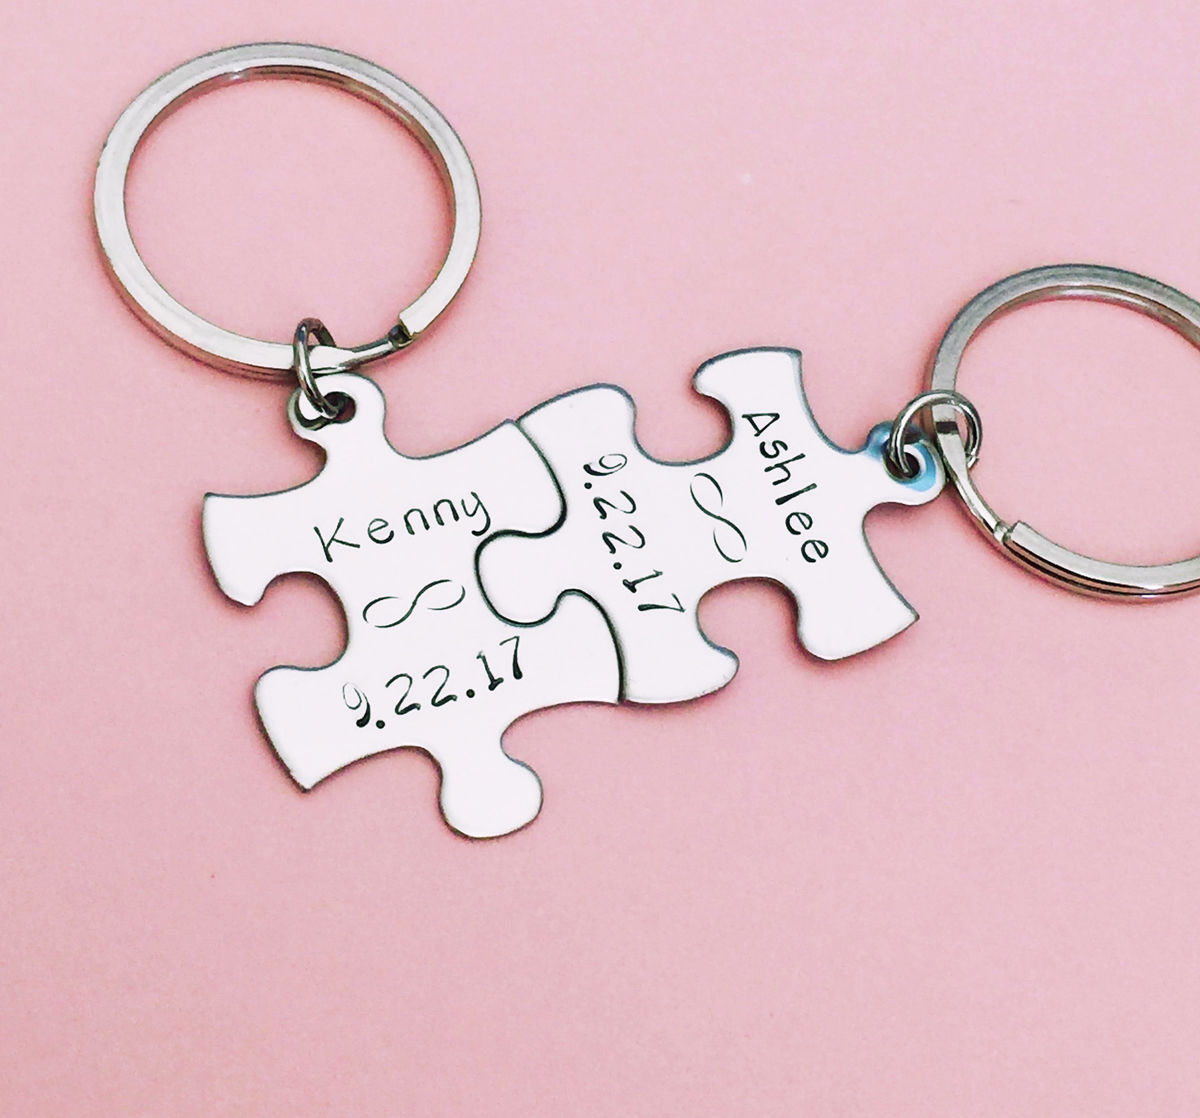 Infinity Keychains with Personalized name and dates, Puzzle Keychain set for Couples - product image